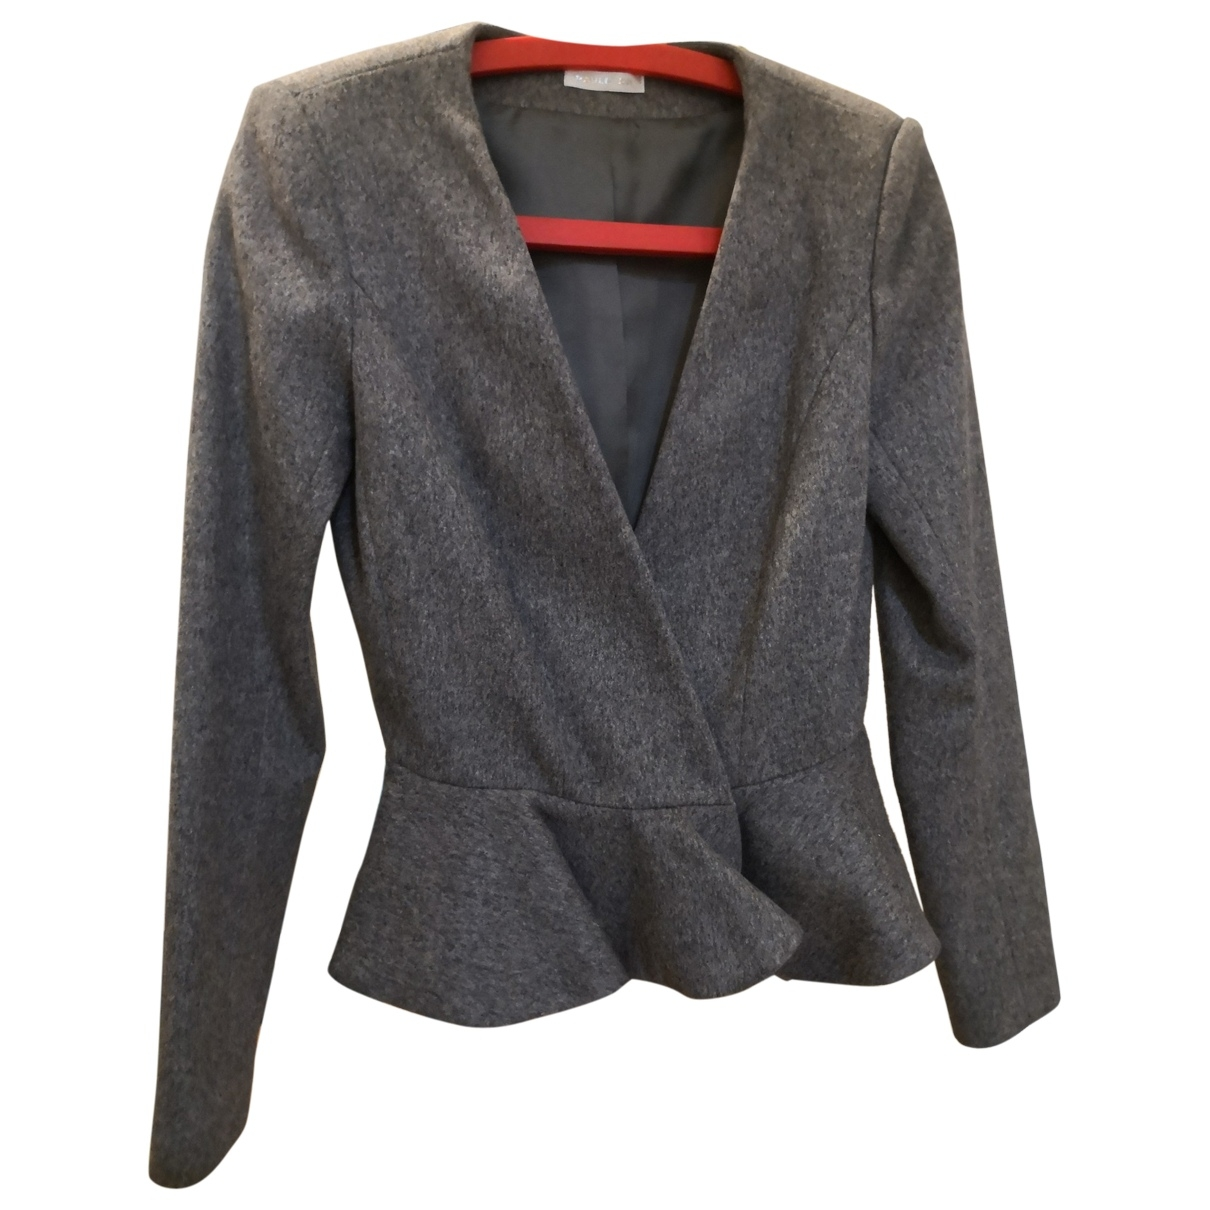 Paule Ka \N Grey Wool jacket for Women 36 FR